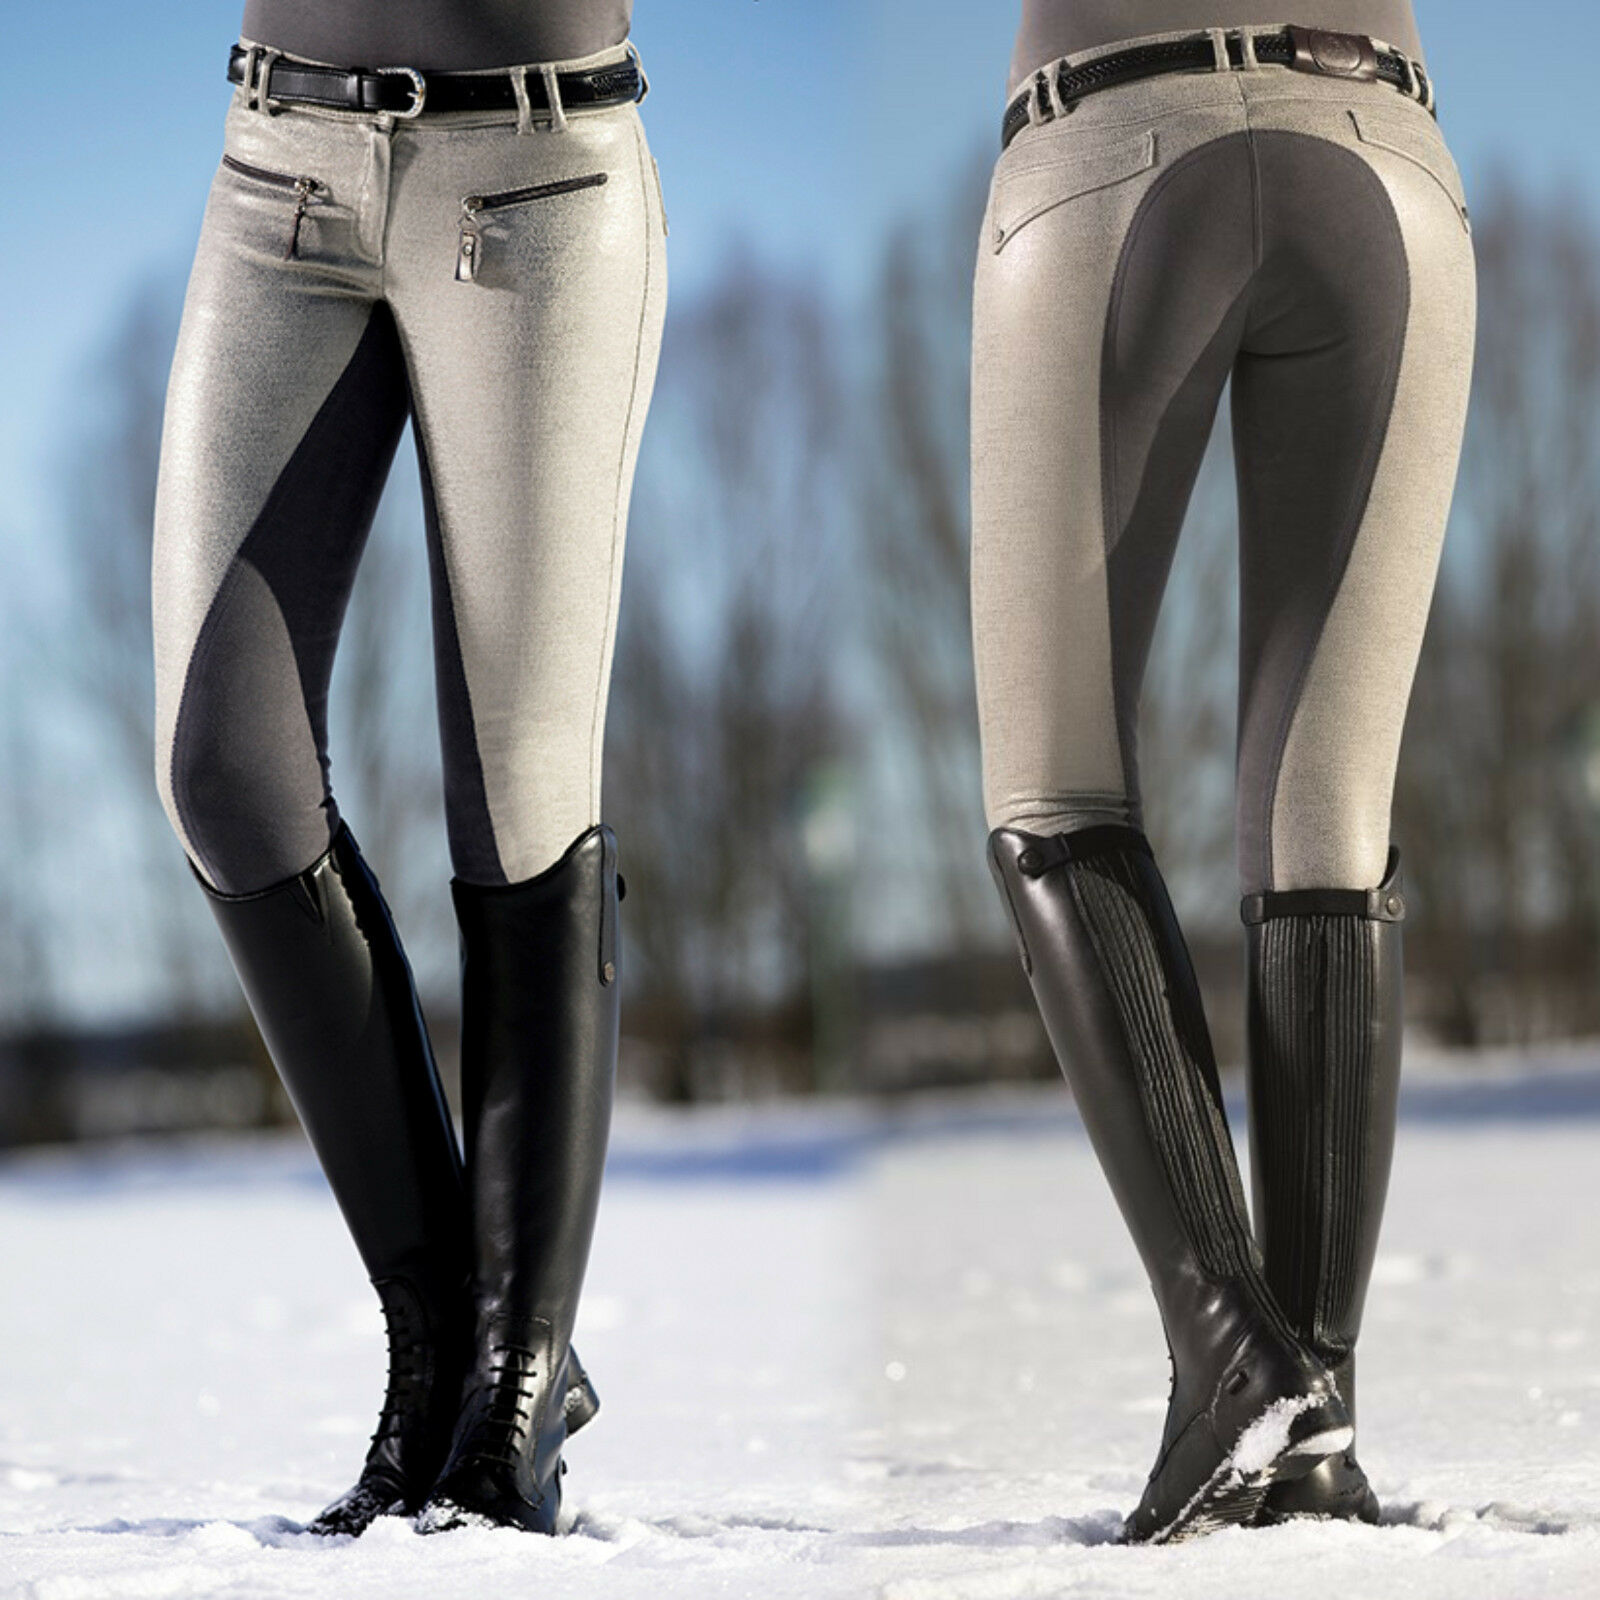 HKM Karina Garrelli Scotland Riding Breeches Stylish 3 4 Alos Trimming (9584)